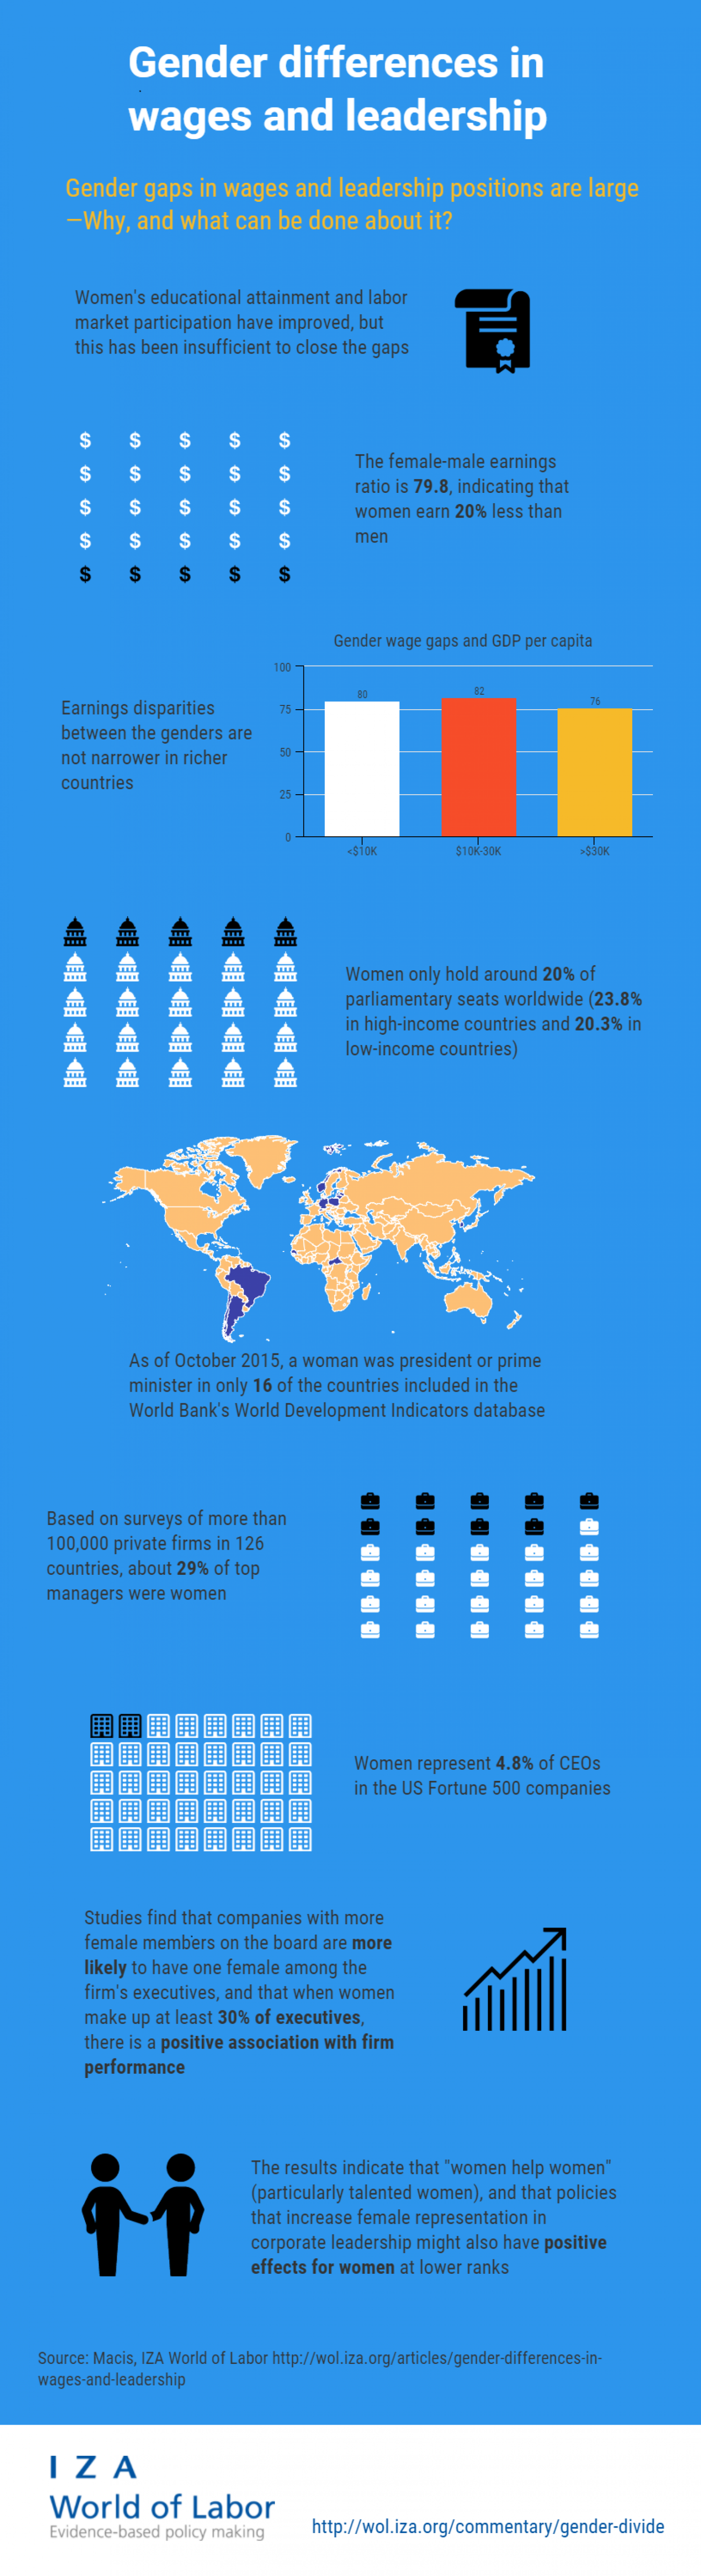 Gender differences in wages and leadership  Infographic